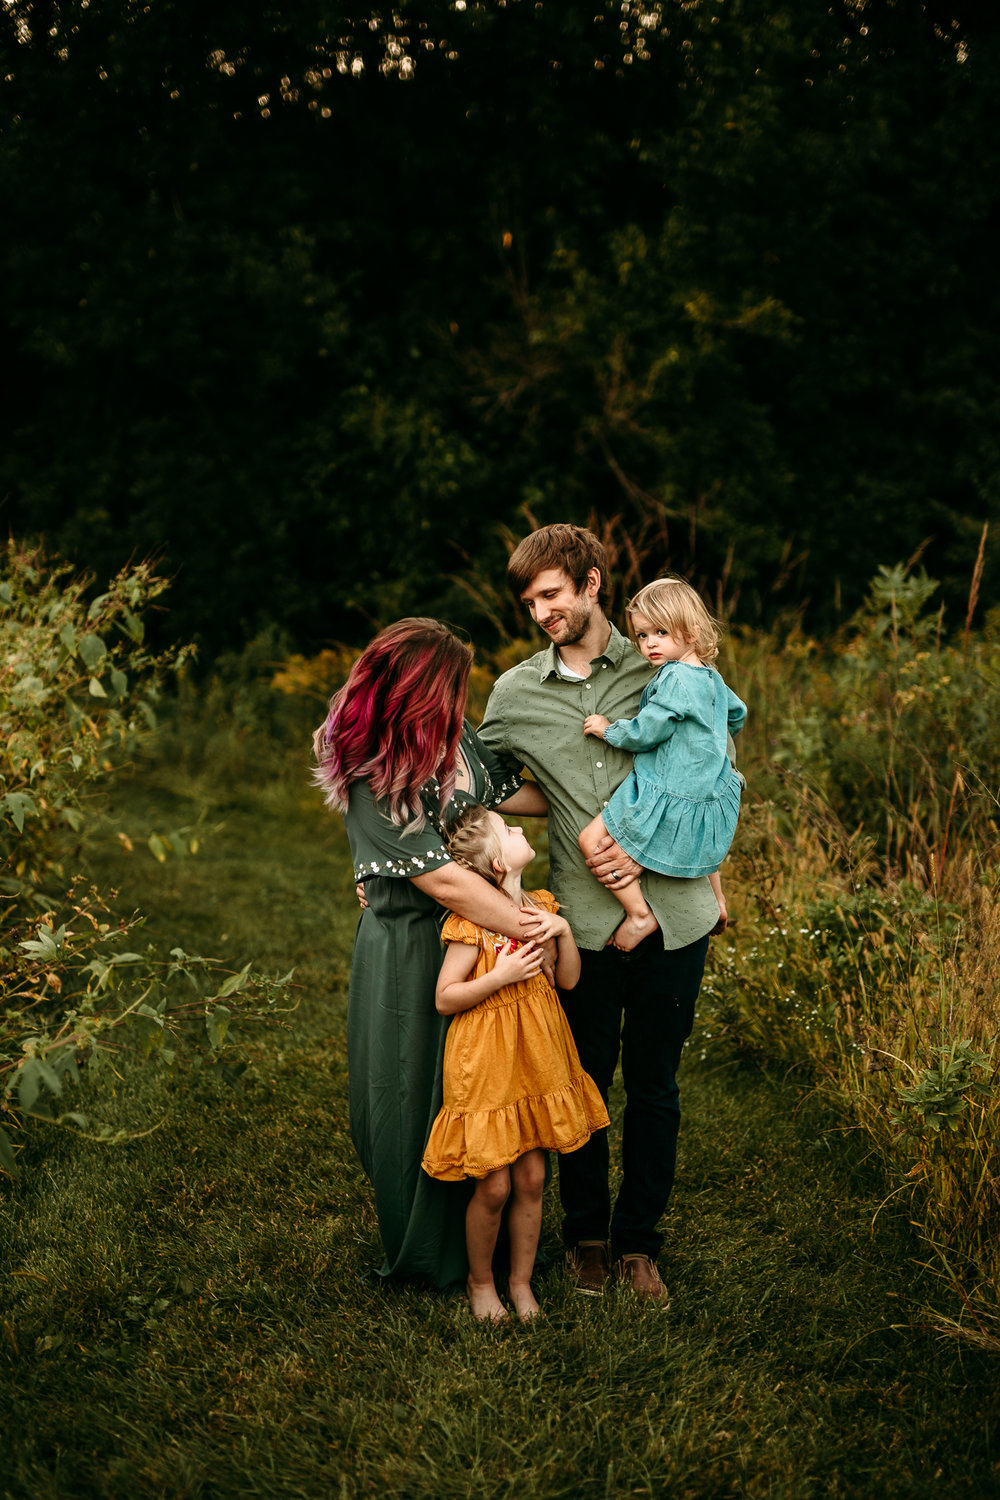 FREESE FAMILY MADE BELOVED PHOTOGRAPHY-17.jpg